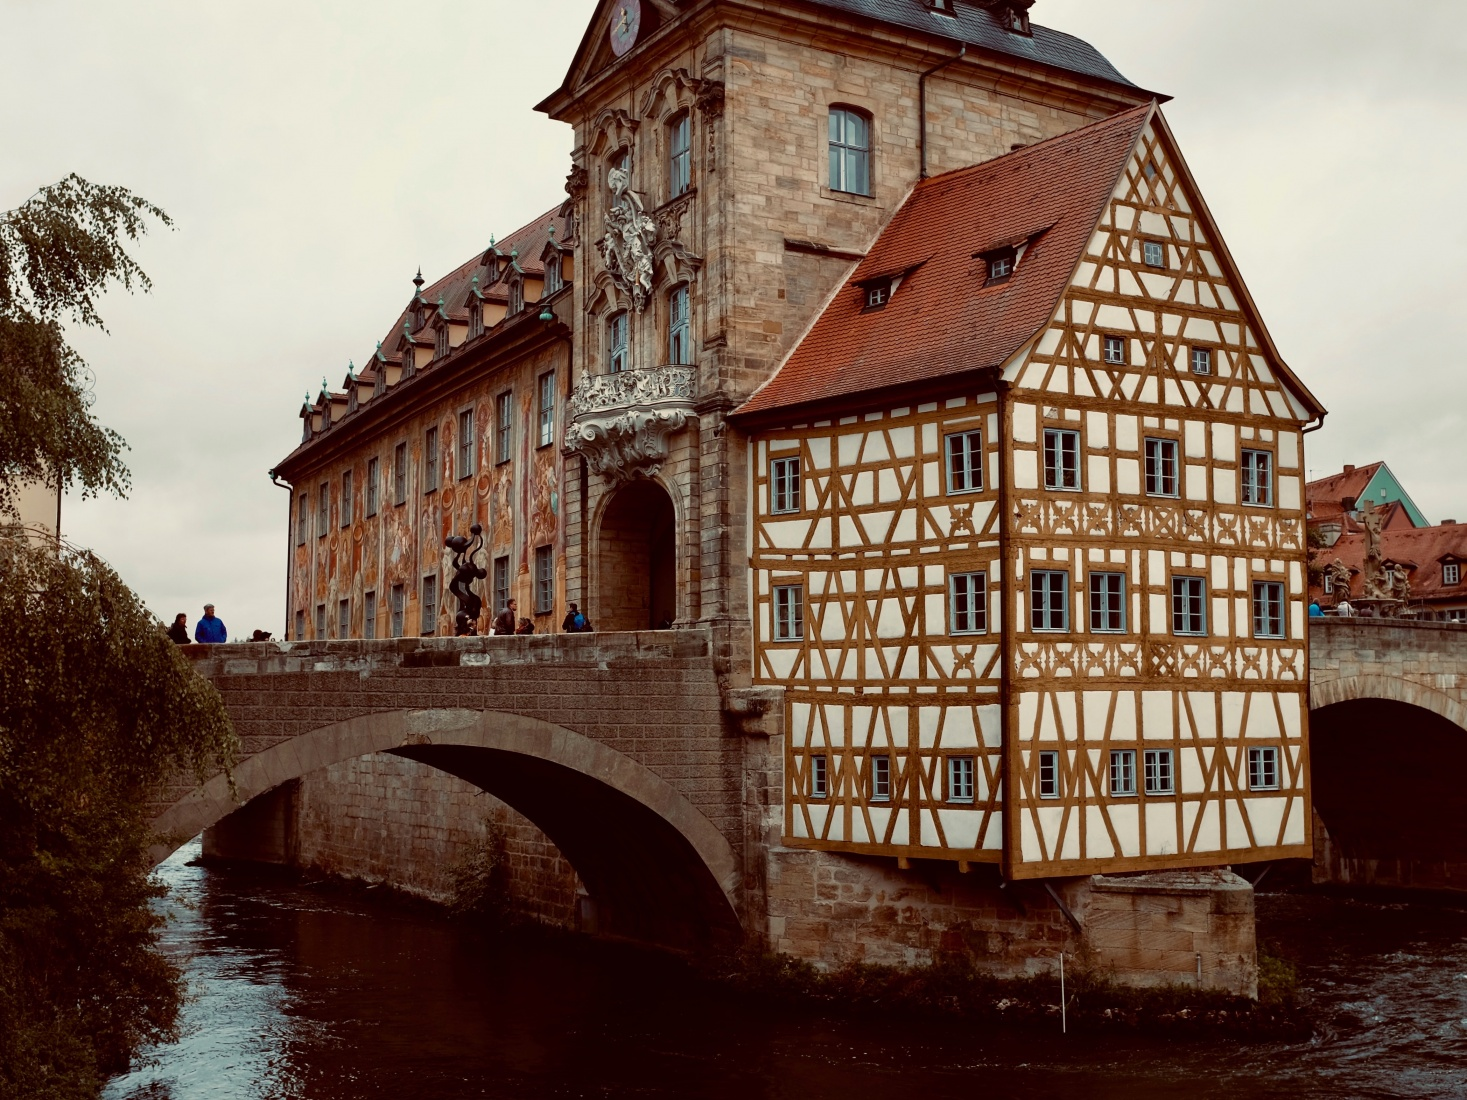 Bamberg, Germany, near the Main River.